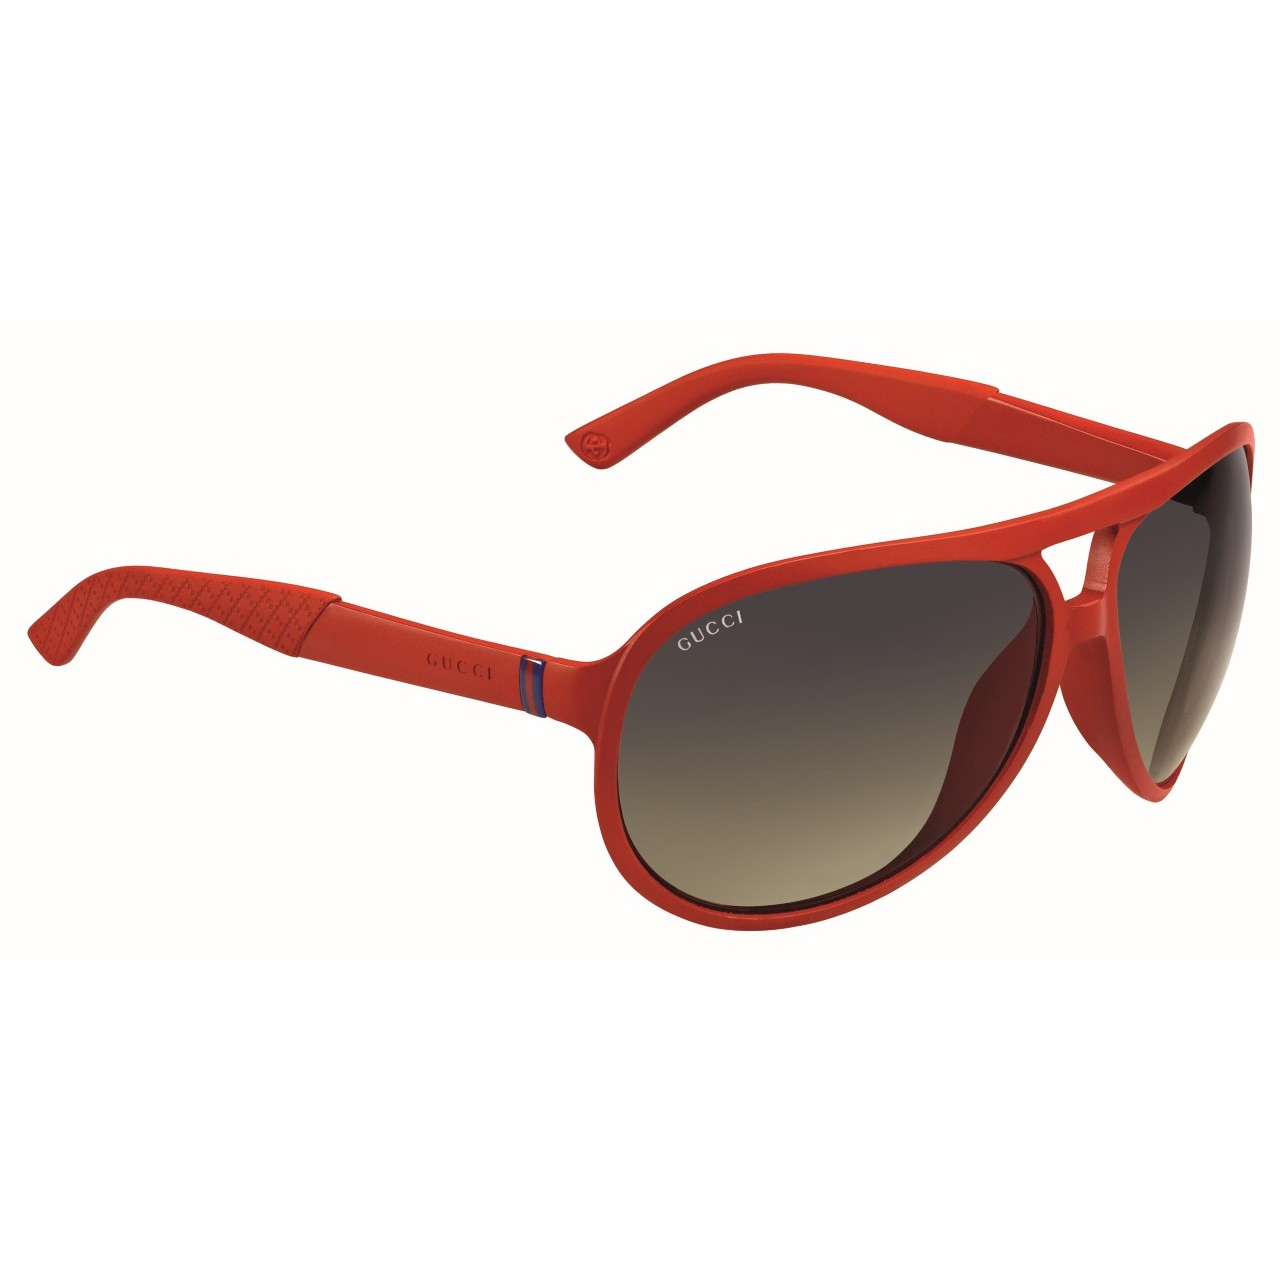 c6b426cb772 Double tap to zoom · Unisex GG1030 N S Keyhole Acetate Aviator Red  Sunglasses ...